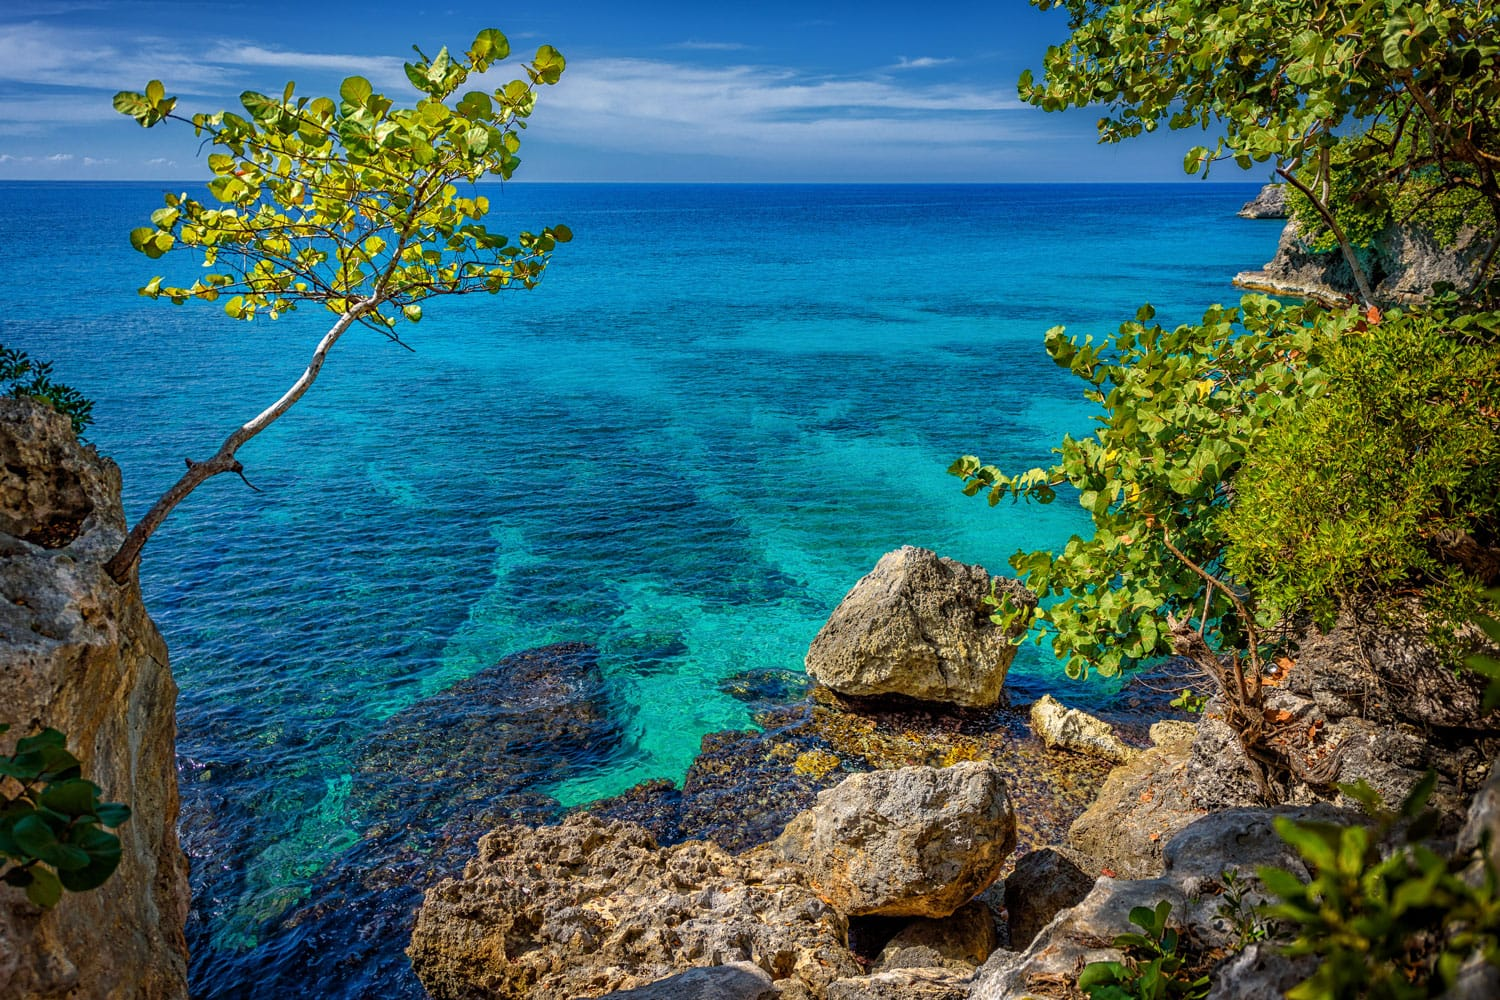 Beautiful turquoise and blue water near rocks and cliffs in Negril, Jamaica.